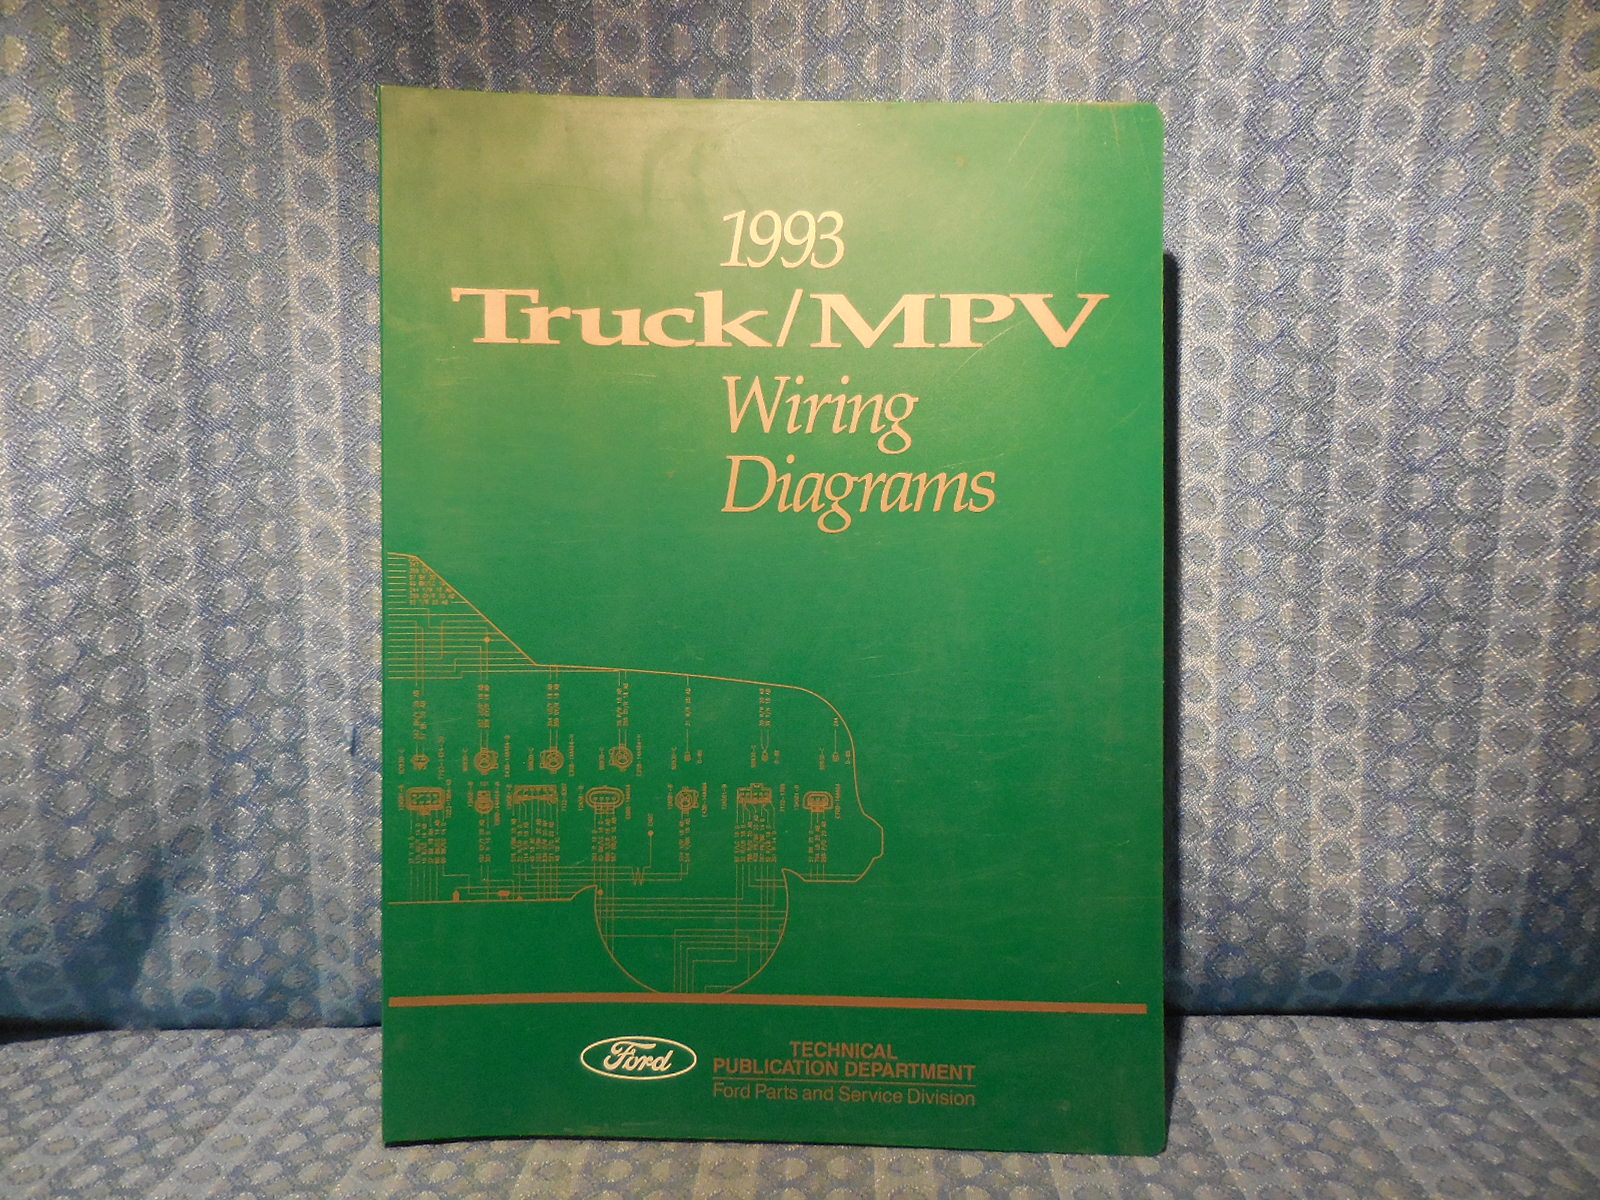 1993 Ford Truck Oem Wiring Diagrams F150 800 Ranger Econoline L 1600 Tractor Diagram Series Explorer